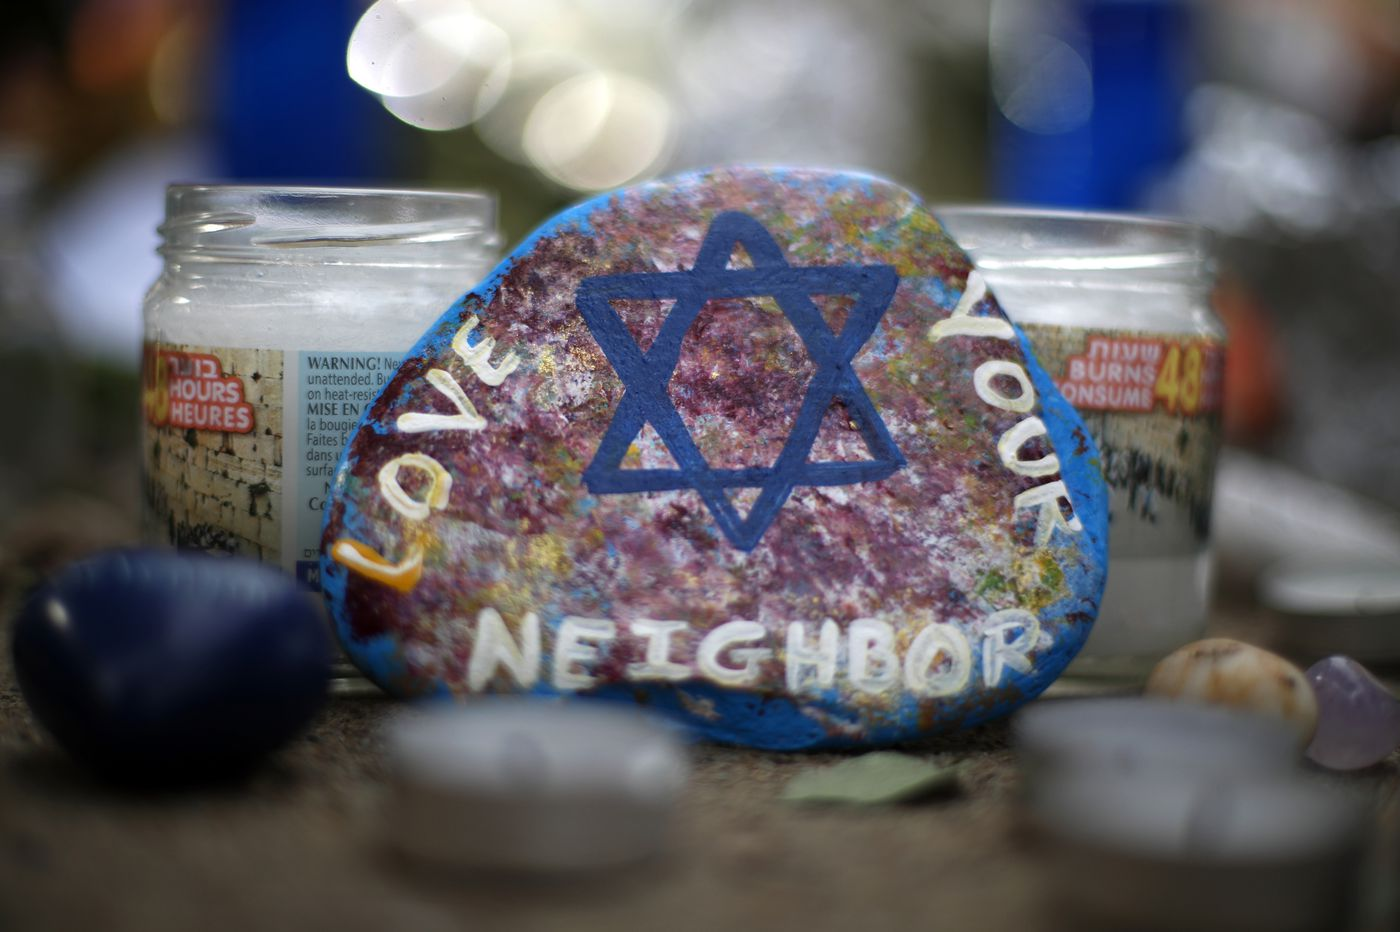 Two years since Tree of Life shooting, anti-Semitism persists in politics | Opinion